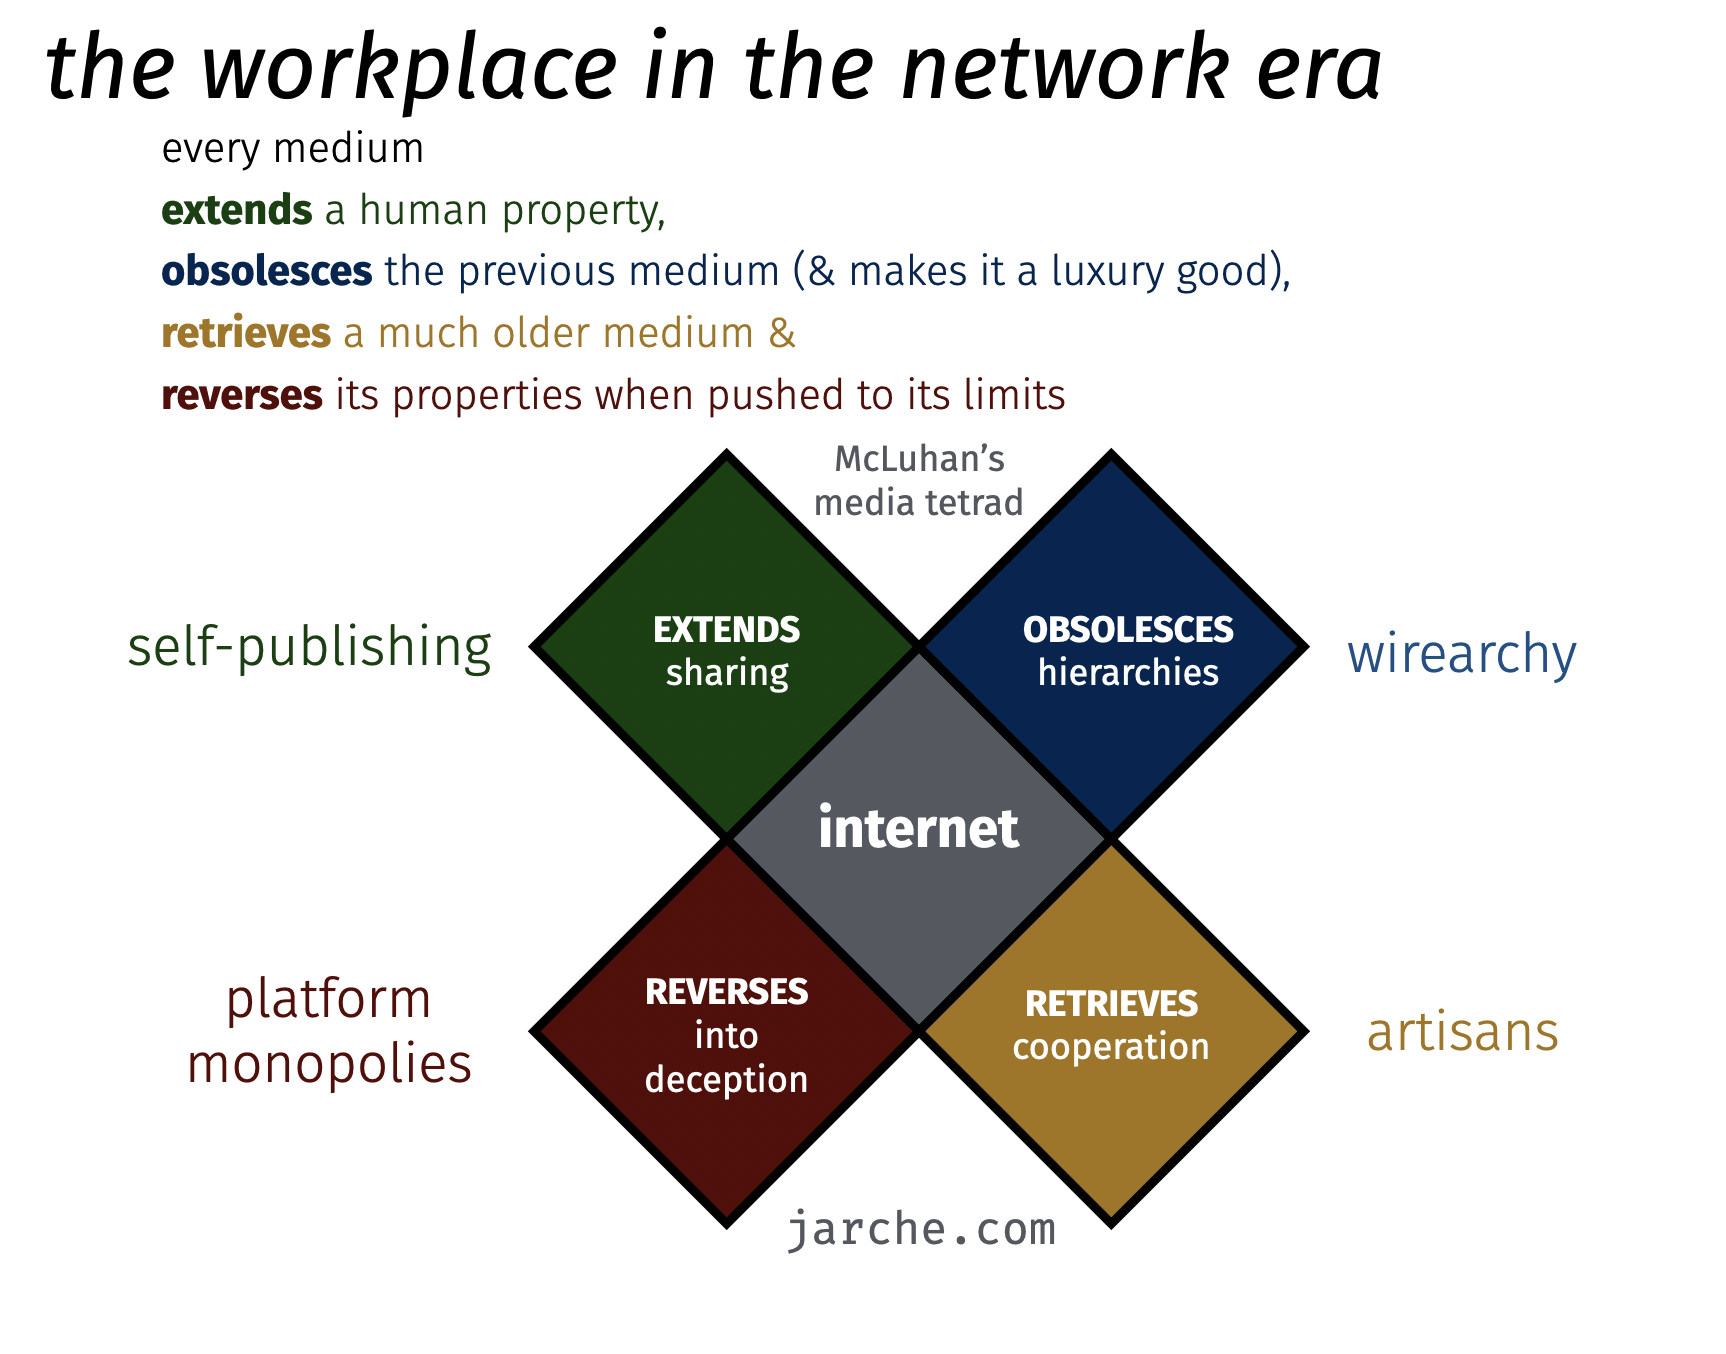 network era workplace tetrad